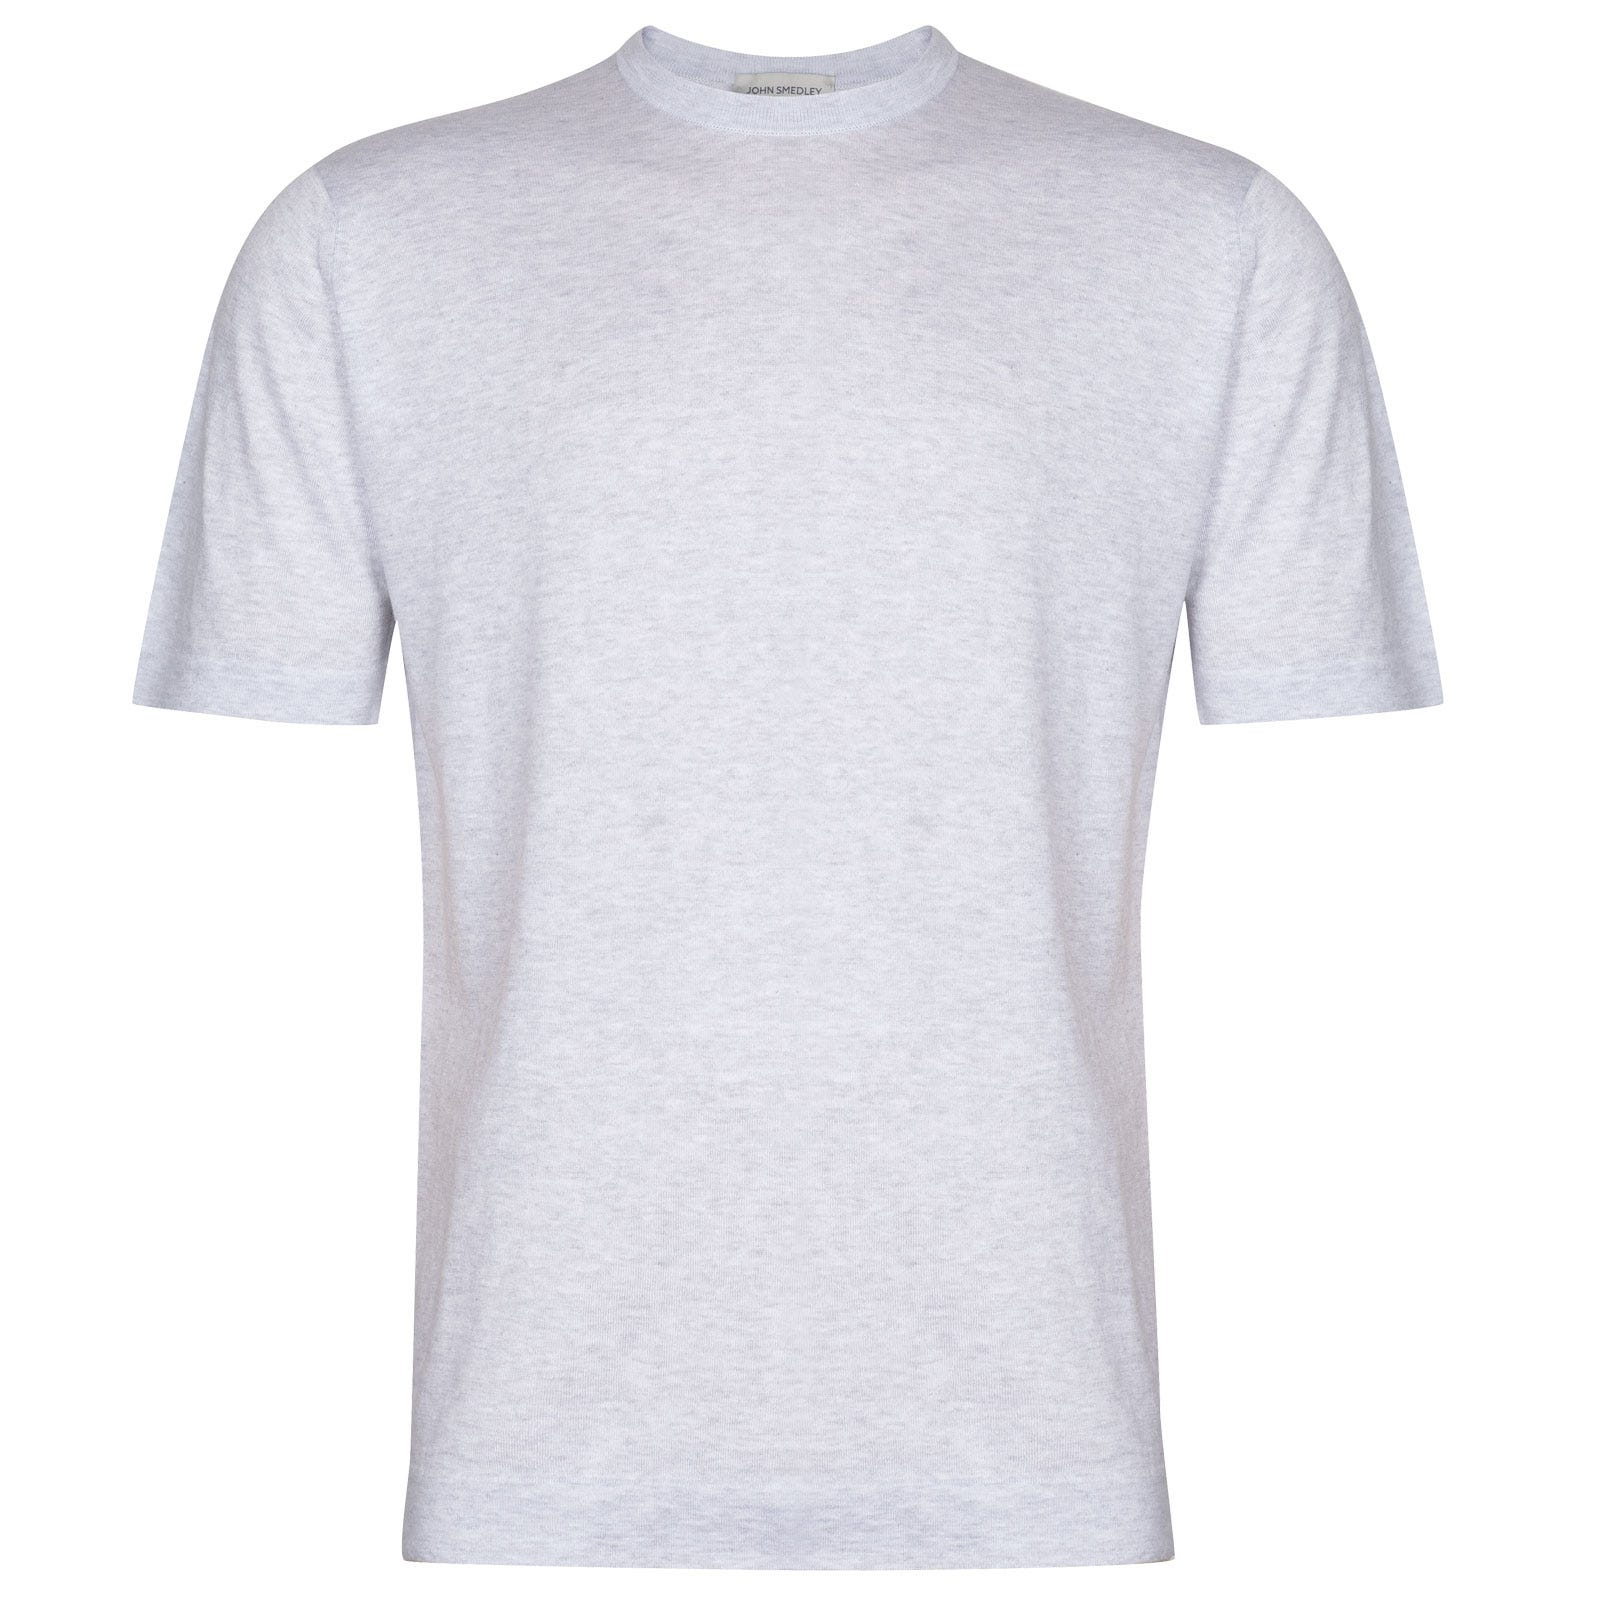 John Smedley Lorca in Feather Grey T-Shirt-XLG